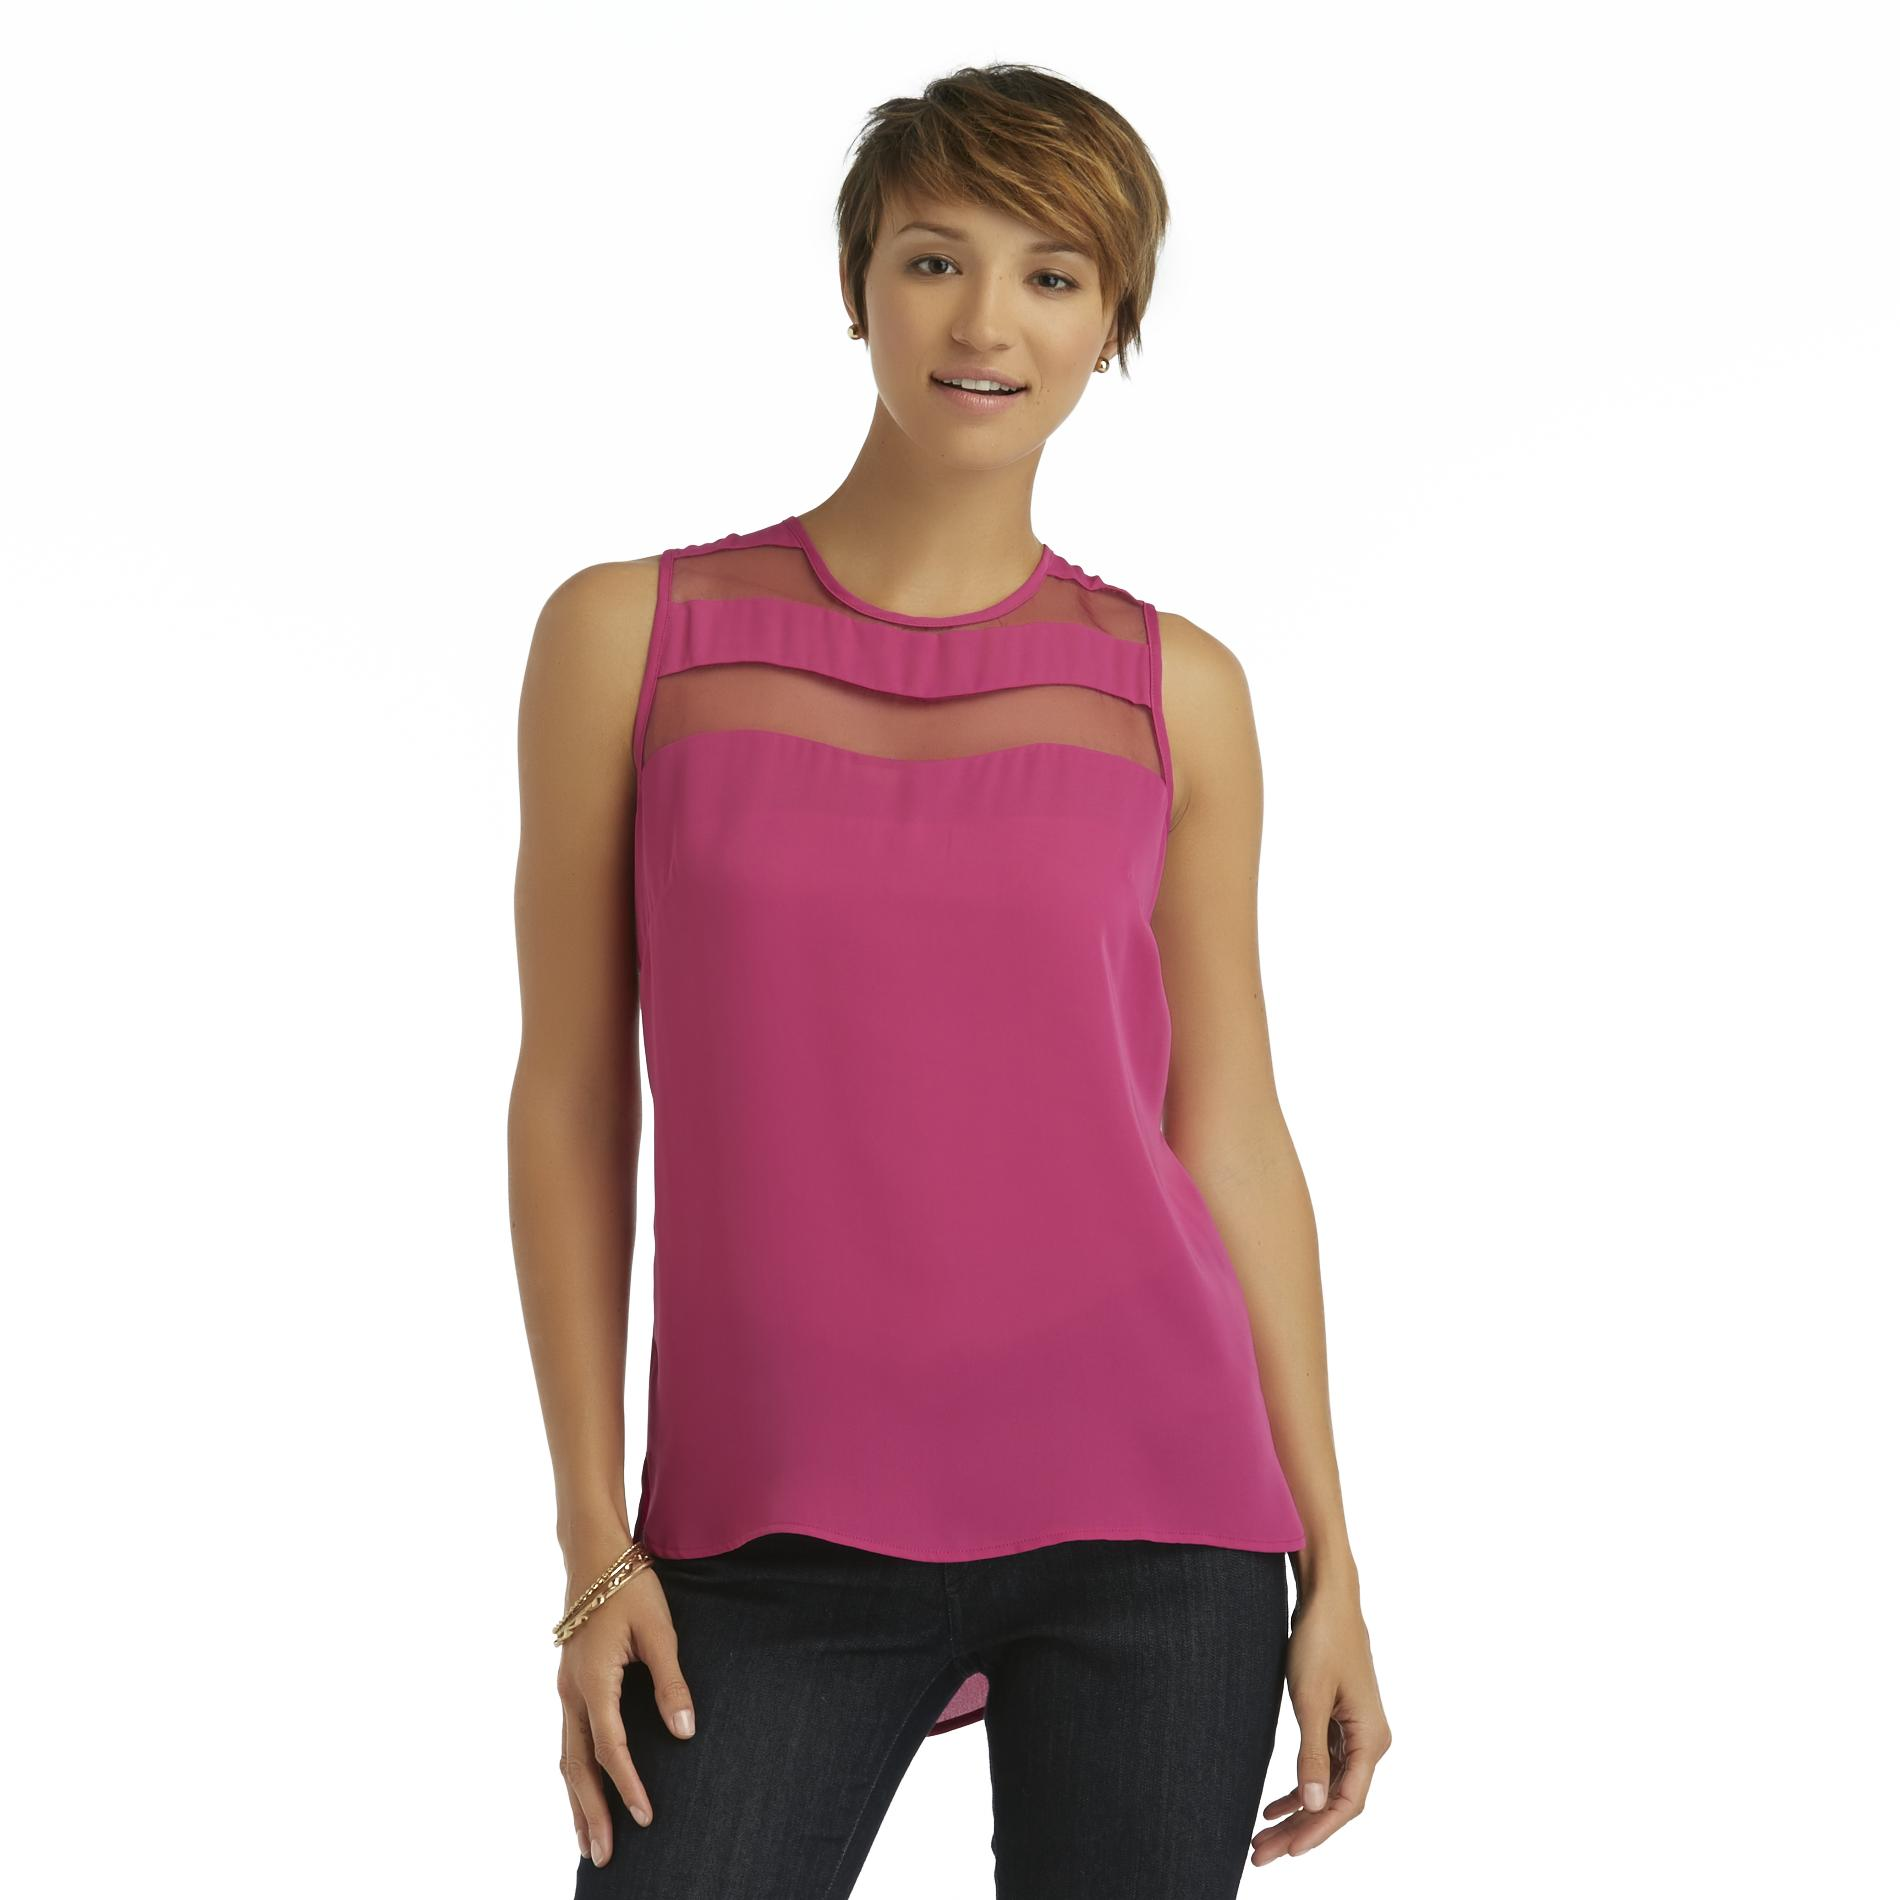 Metaphor Women's Semi-Sheer Tank Top at Sears.com